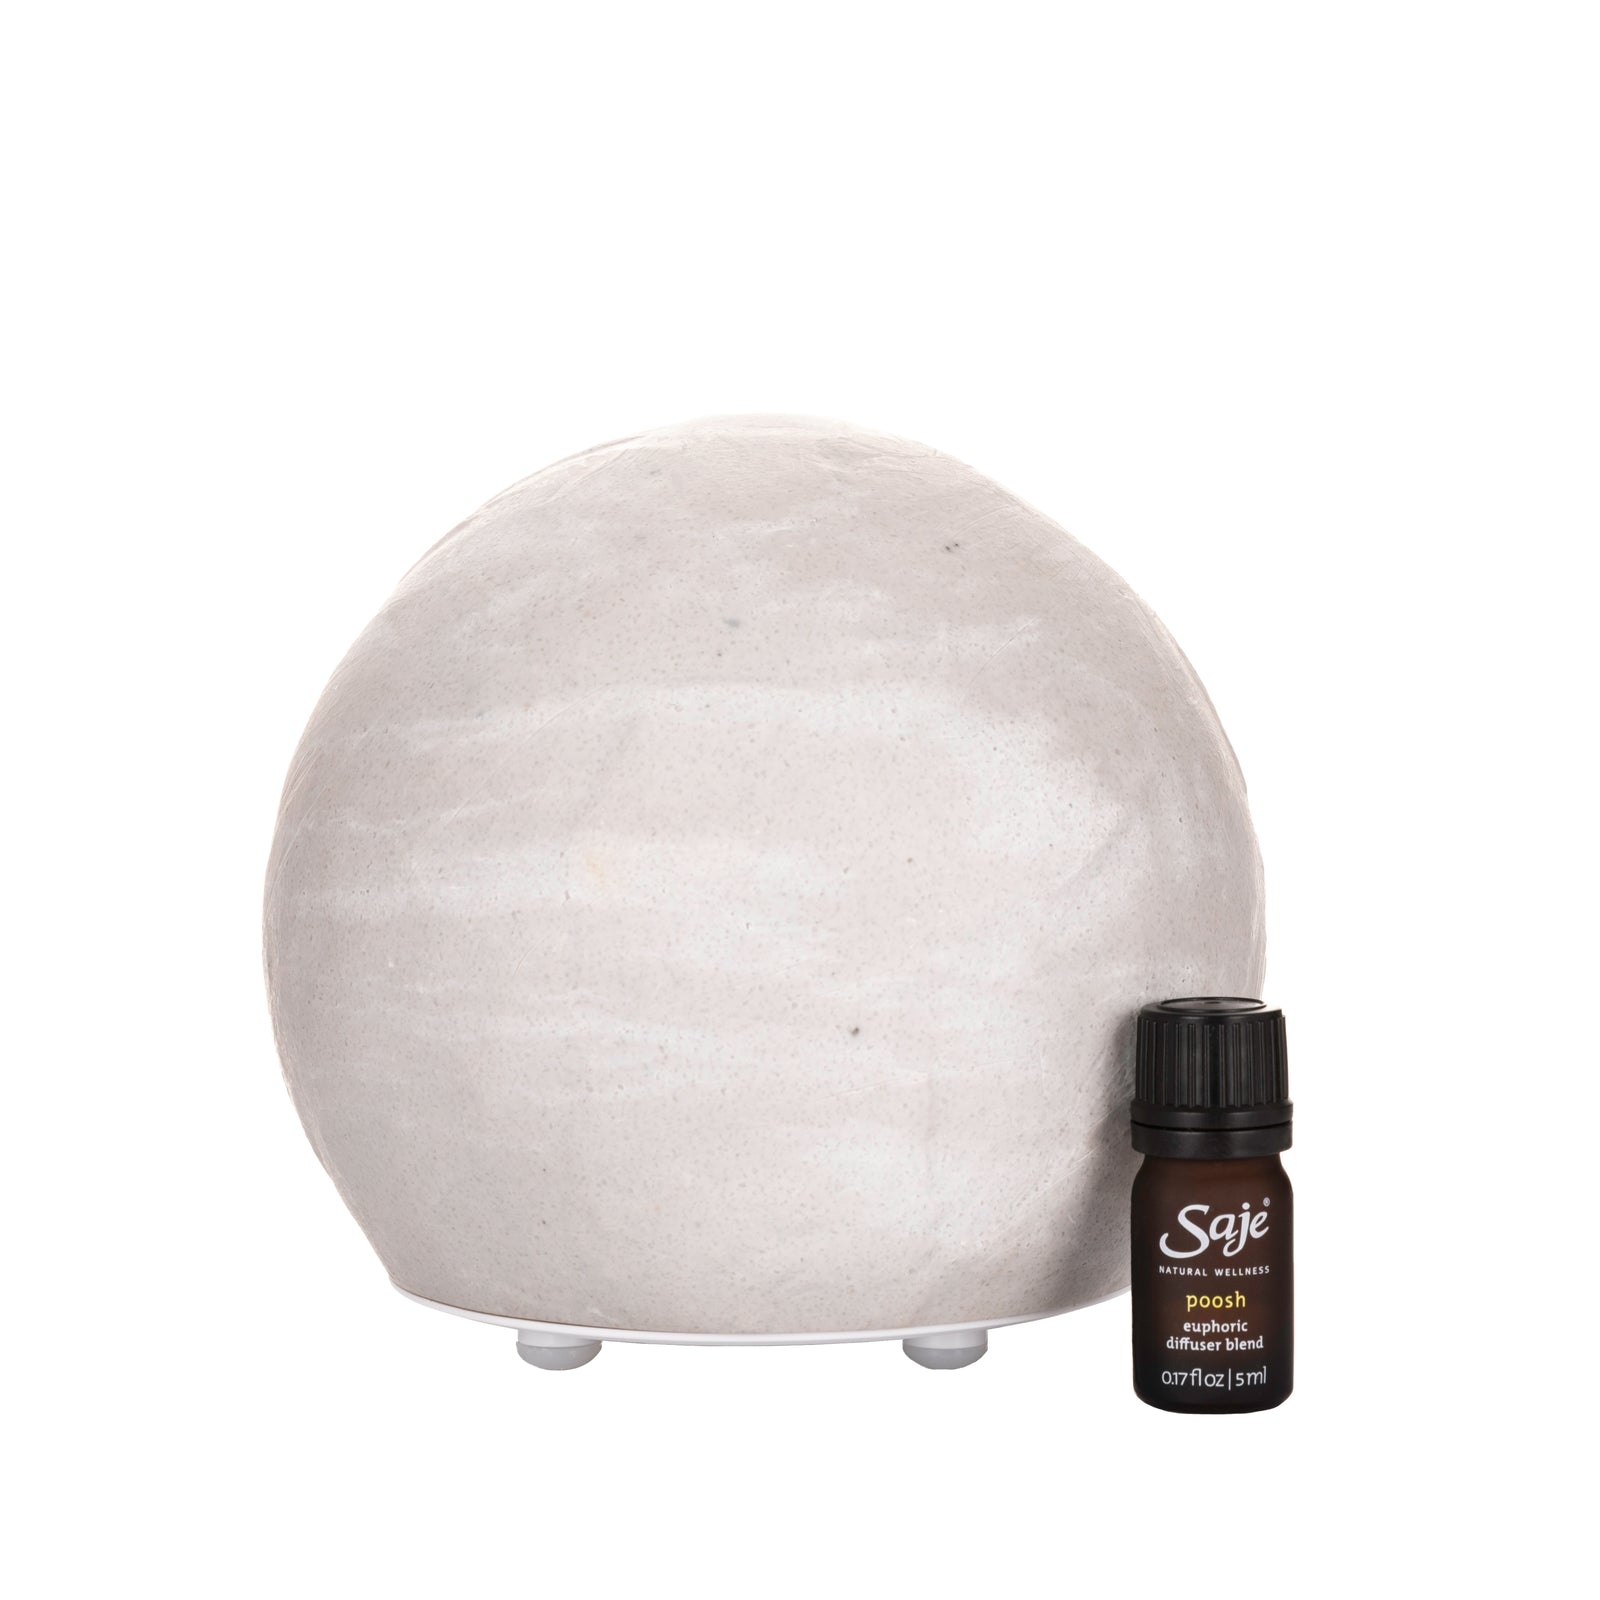 Positively Poosh Ultrasonic Diffuser Kit in White